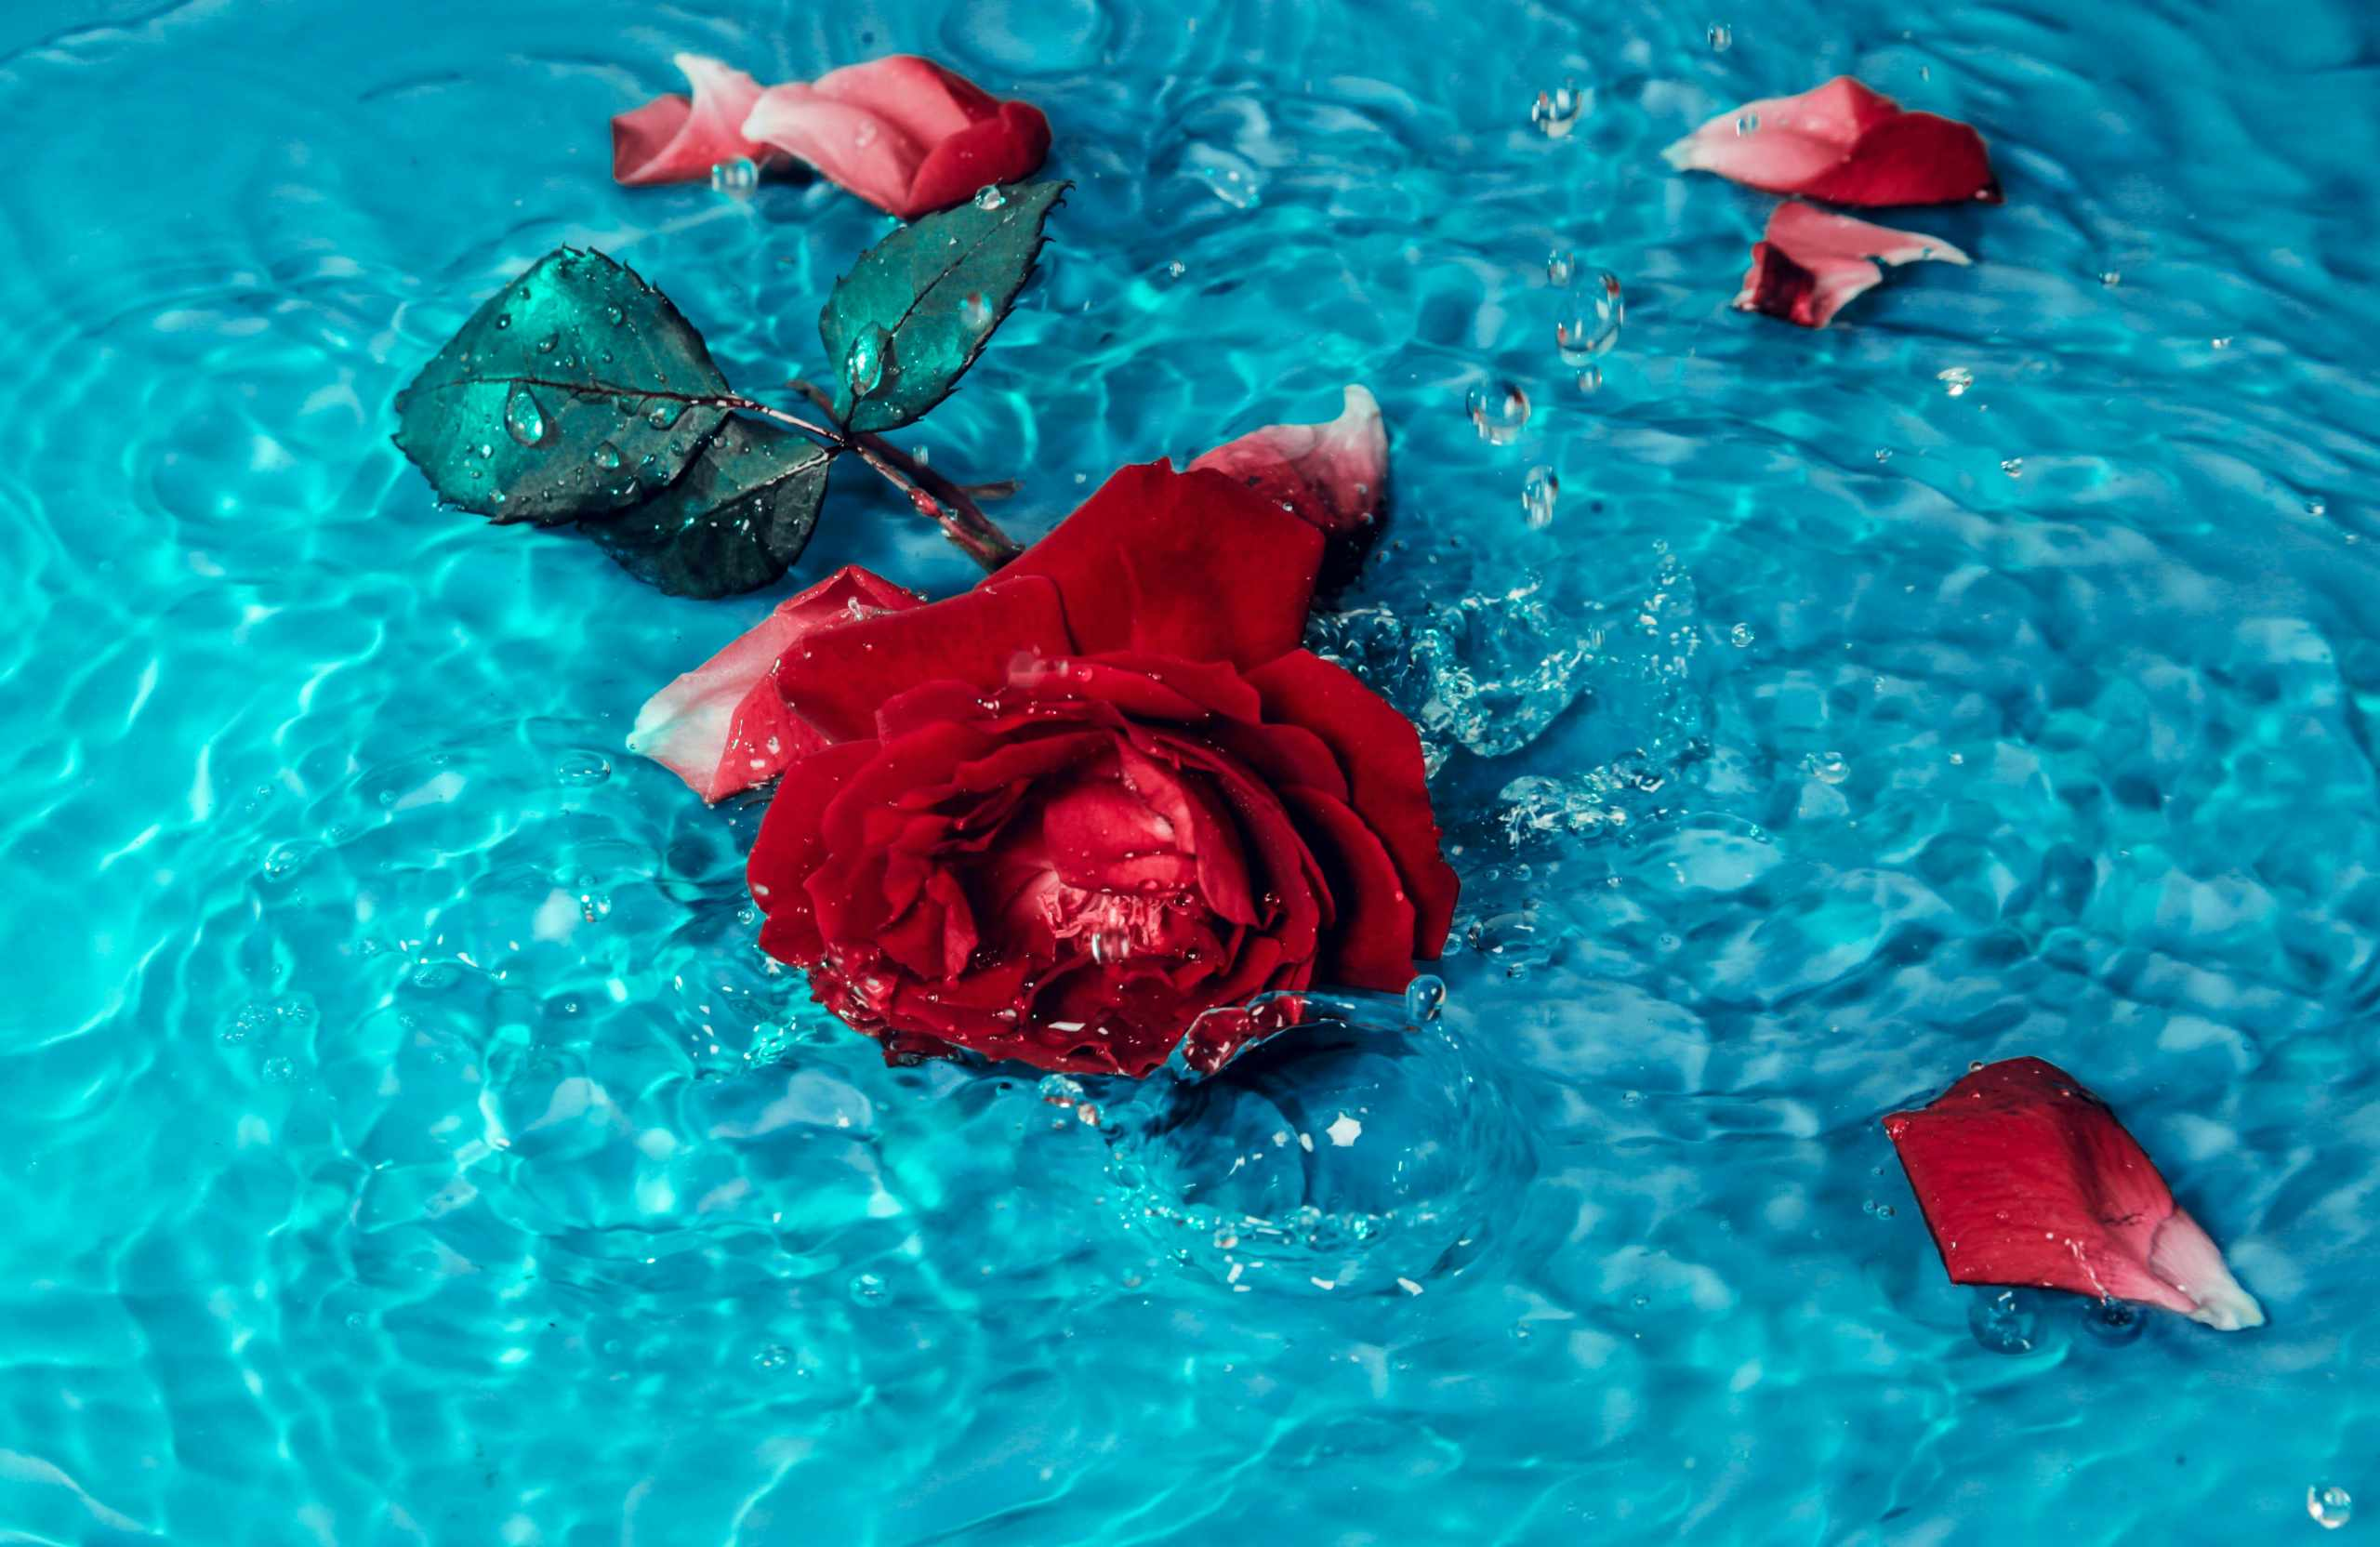 Rose for good health and wellbeing